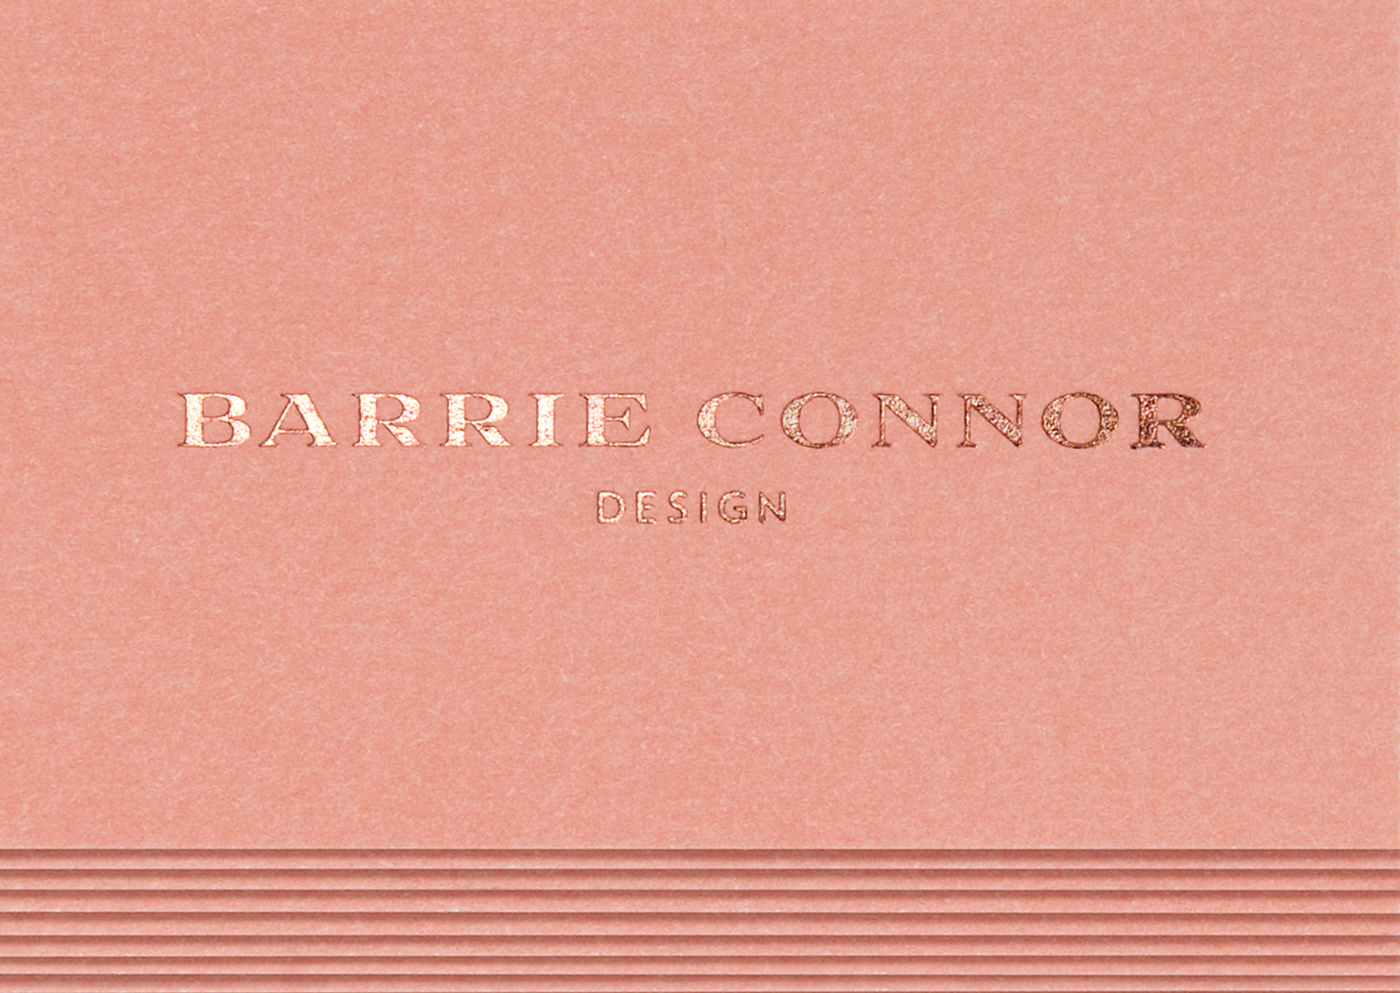 Barrie Connor Design Business Cards on Behance